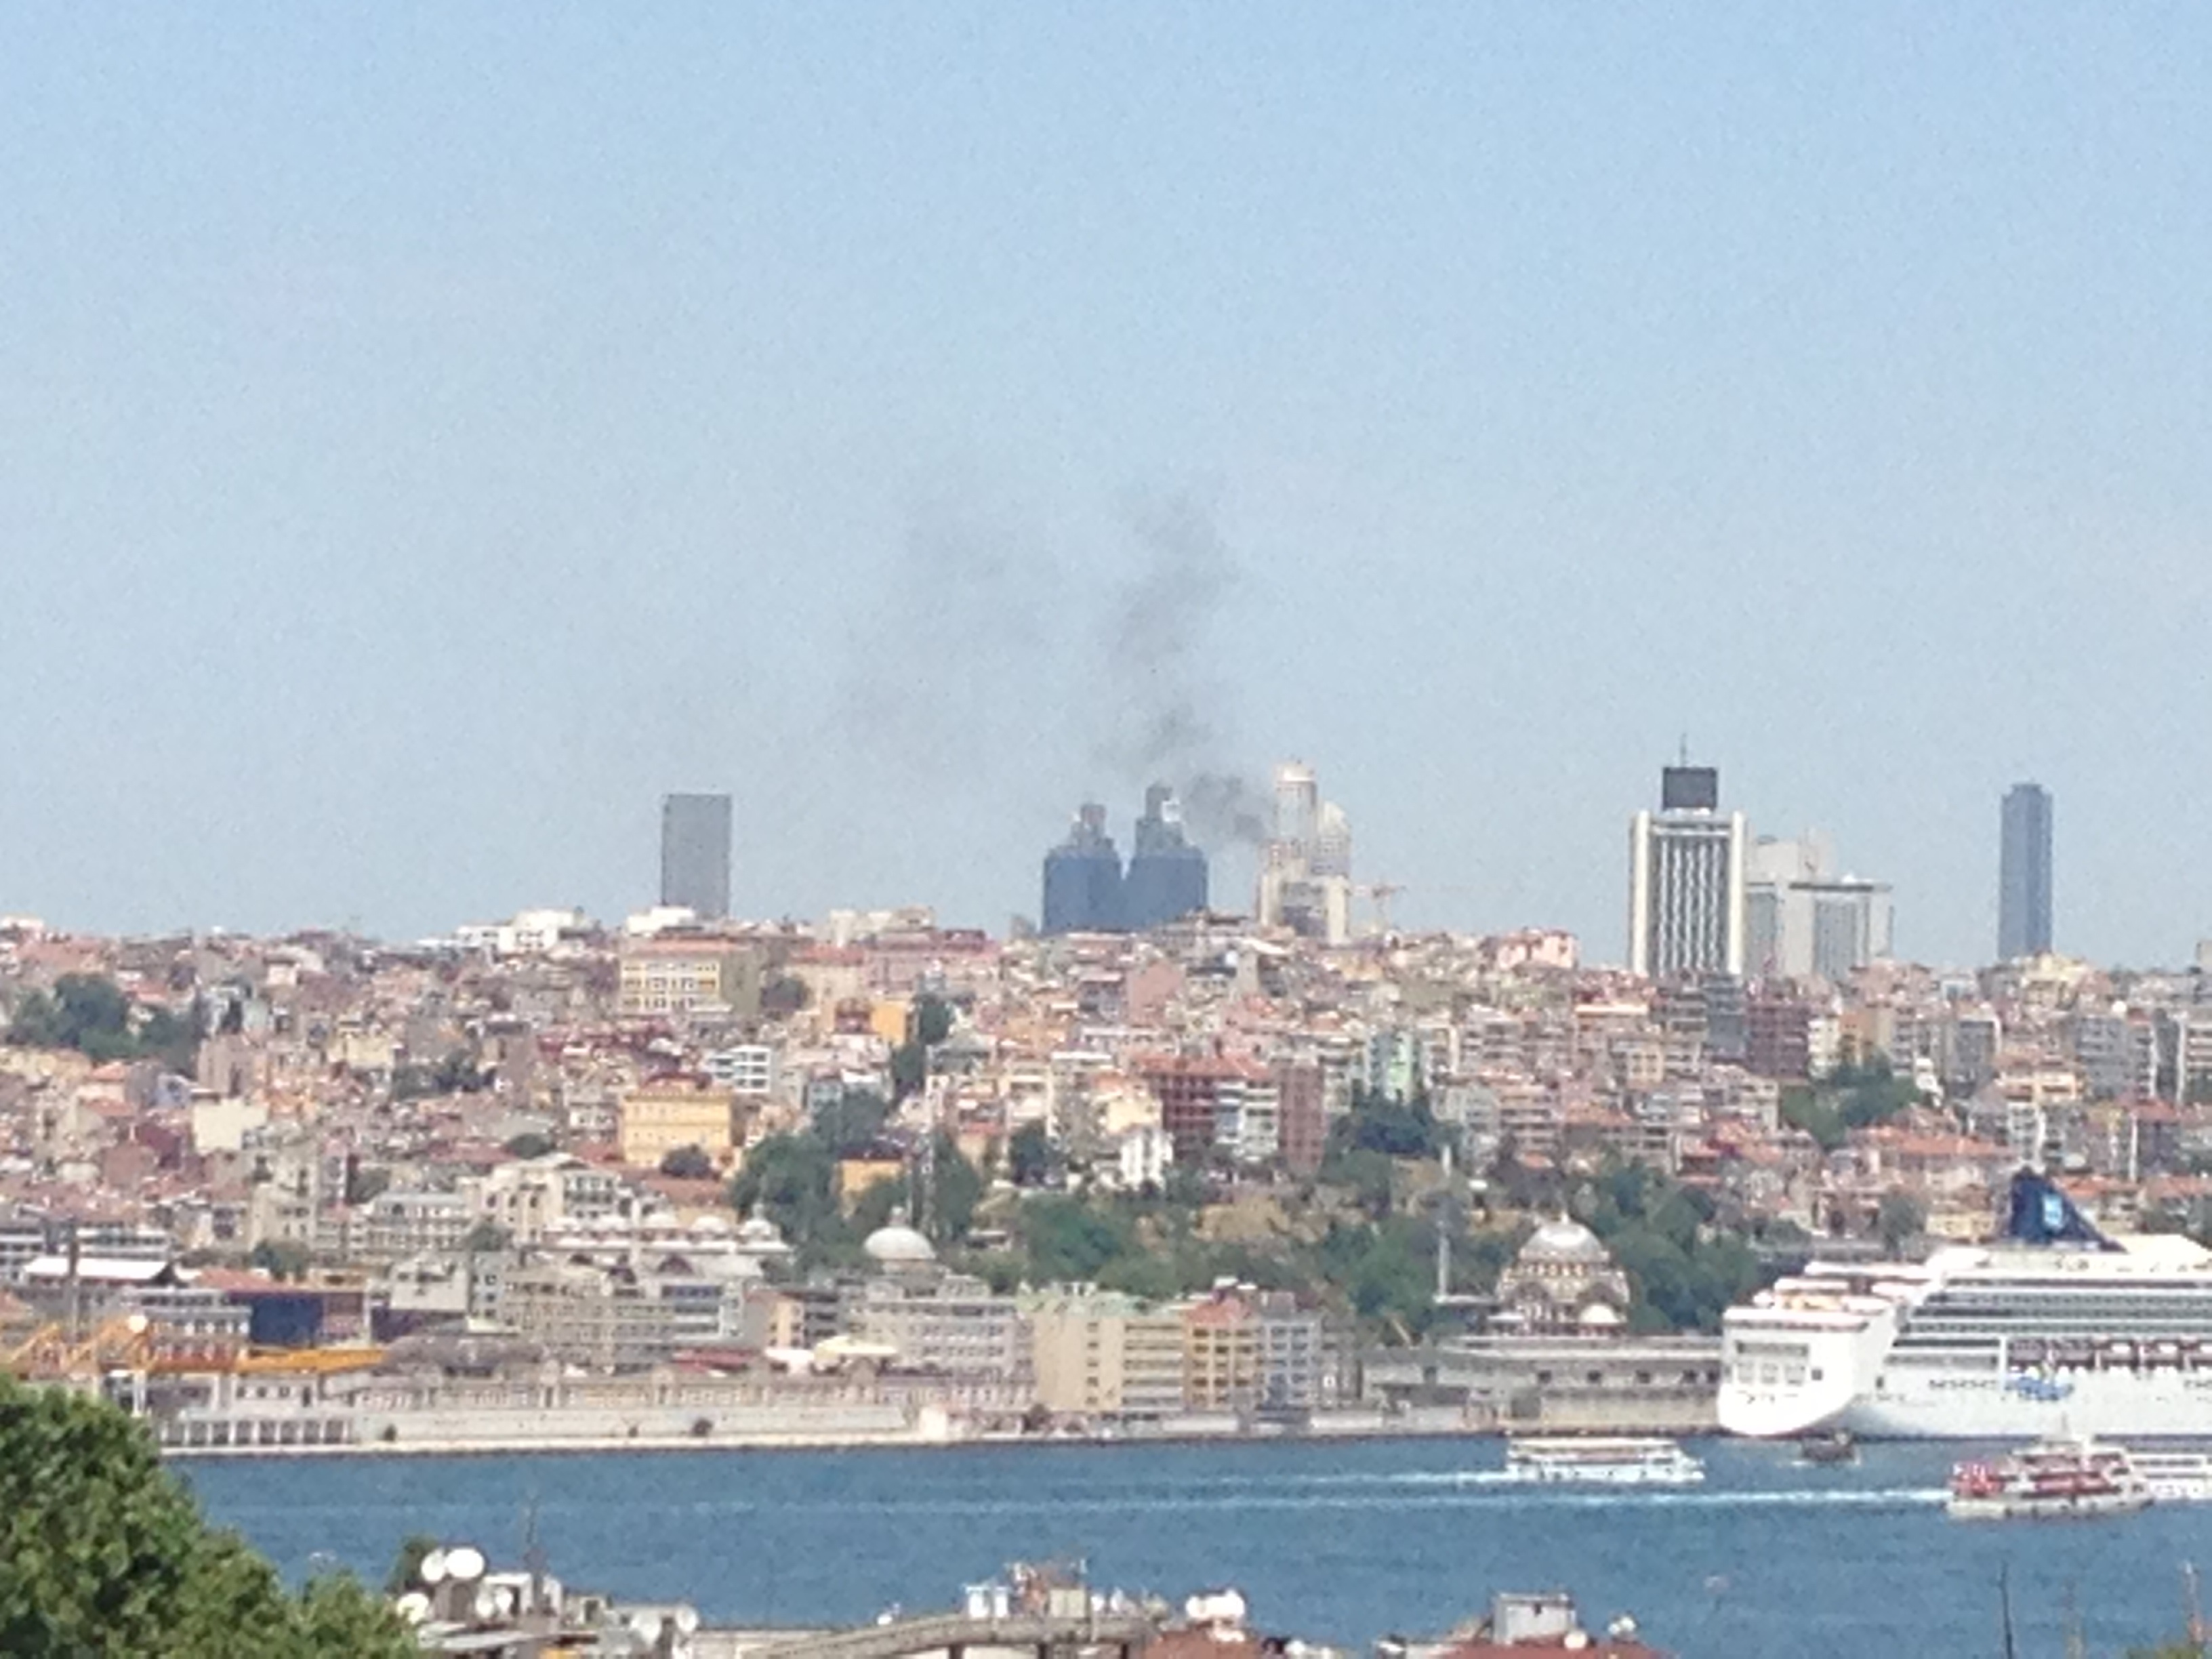 Taksim Square … from a safe distance.